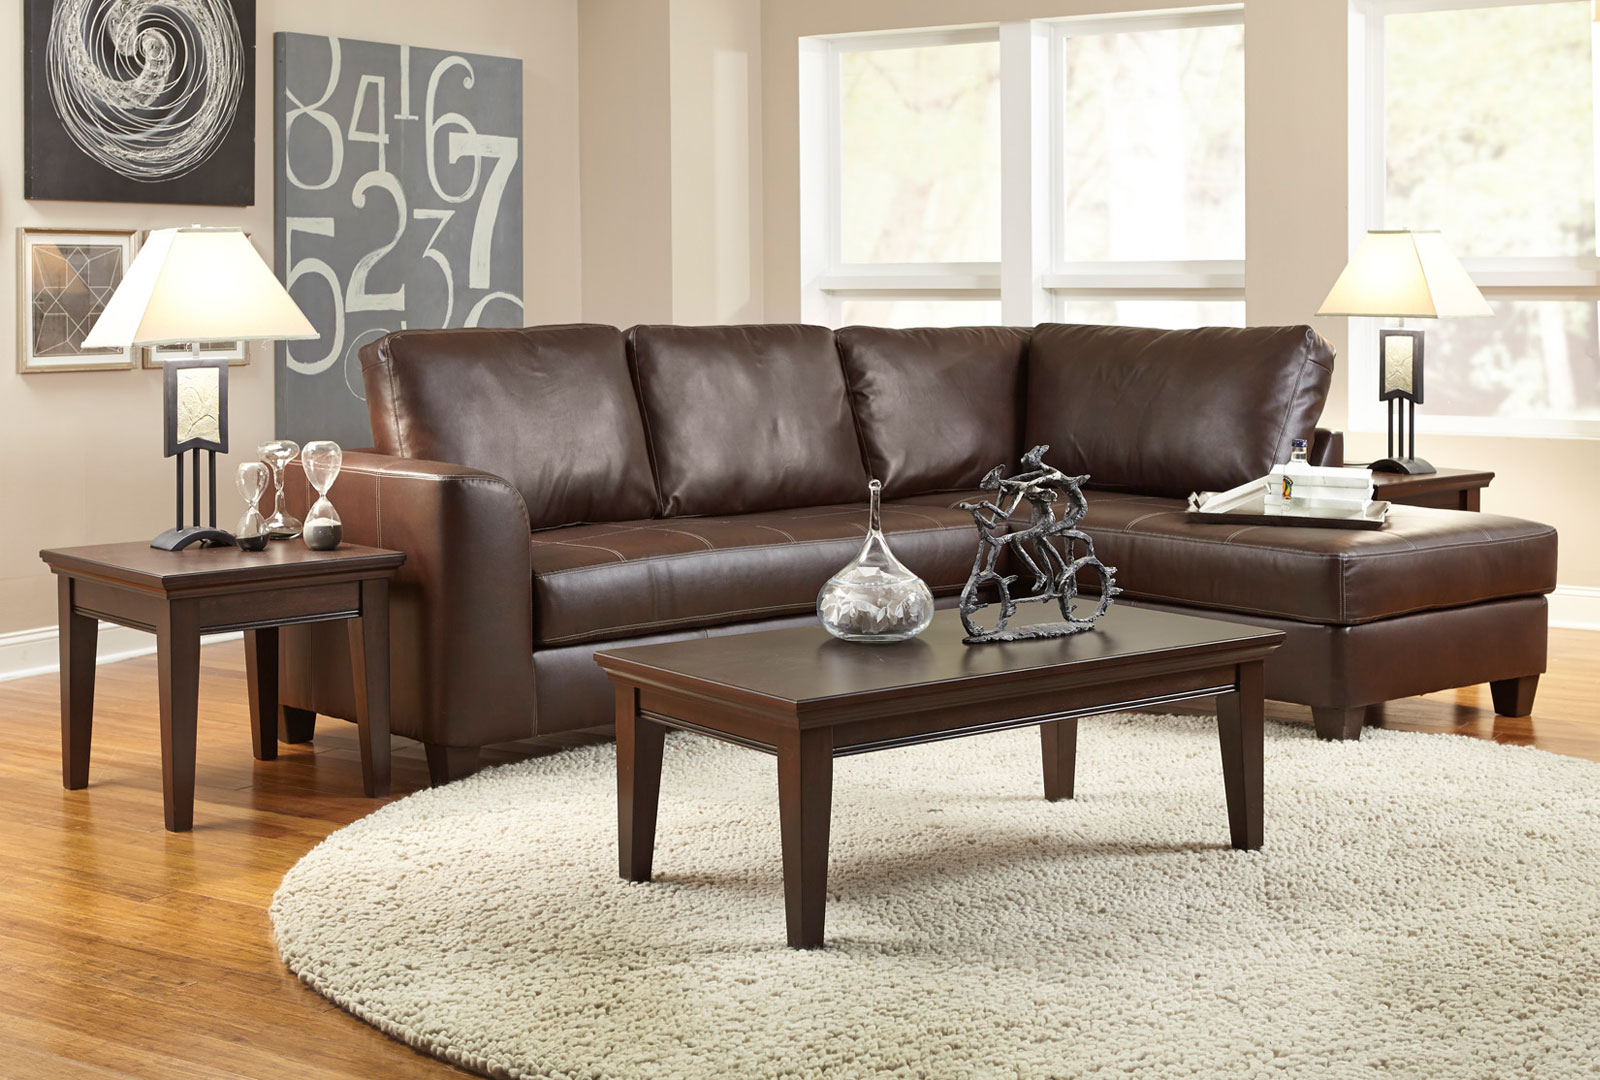 Your Furniture Rental Solution . . . Simplified